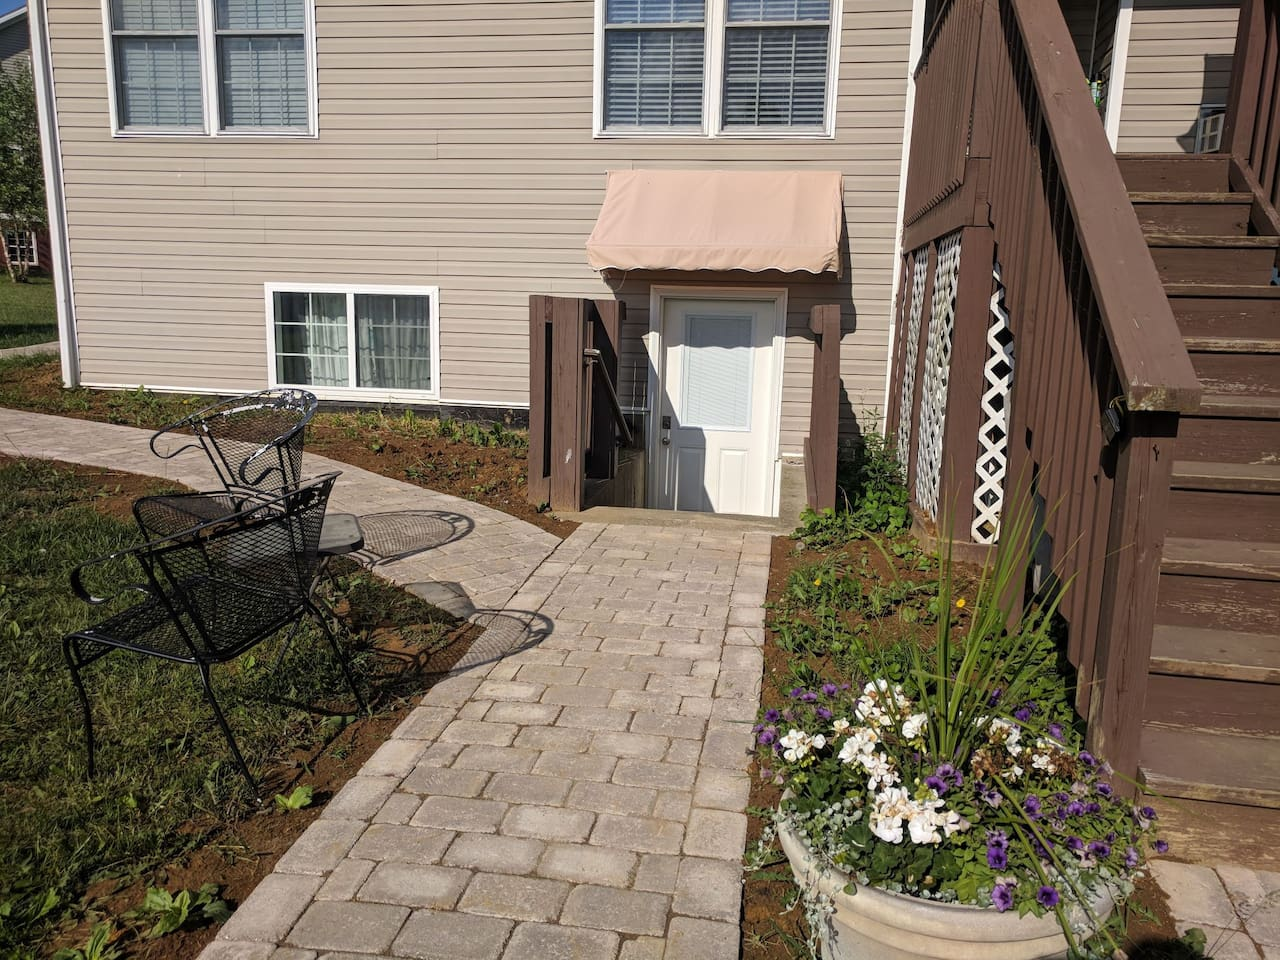 5 concrete steps down to your private unit.